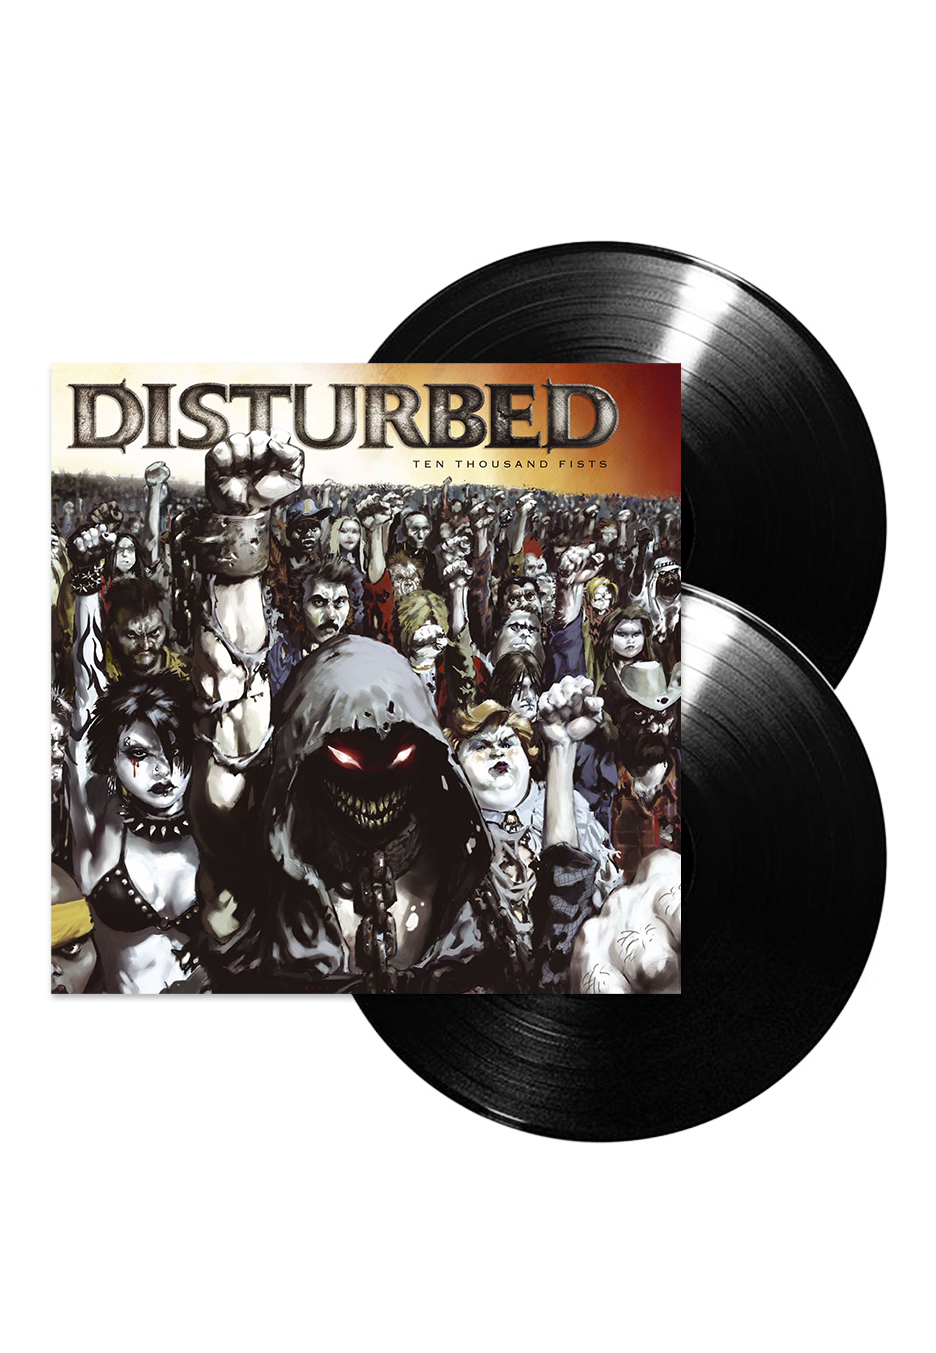 Very valuable Ten thousand fist by disturbed